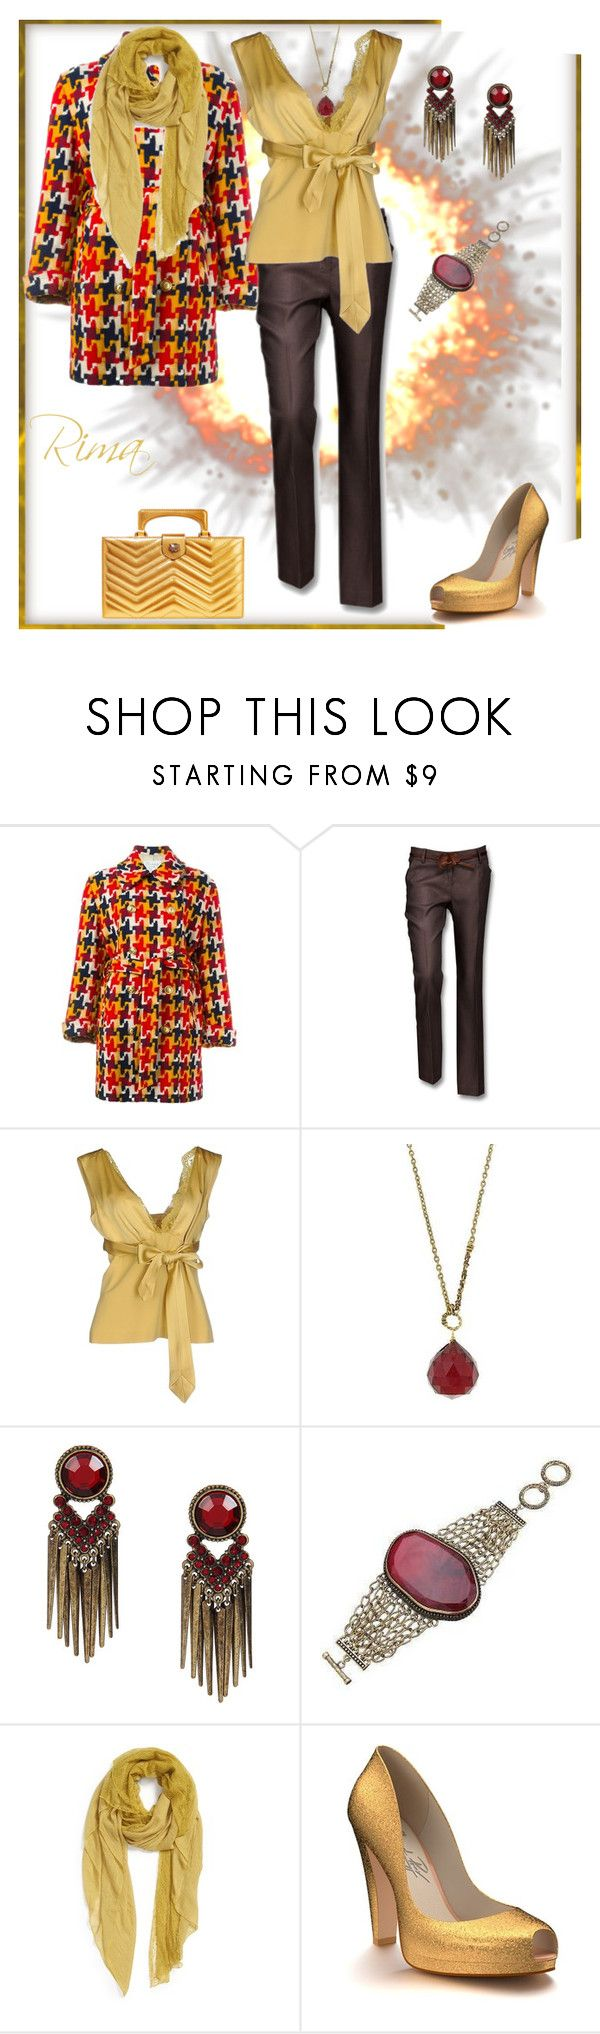 """""""Ready for fall..."""" by rima1205 ❤ liked on Polyvore featuring Moschino, SCERVINO STREET, 1928, Remi & Reid, Shoes of Prey and Gucci"""